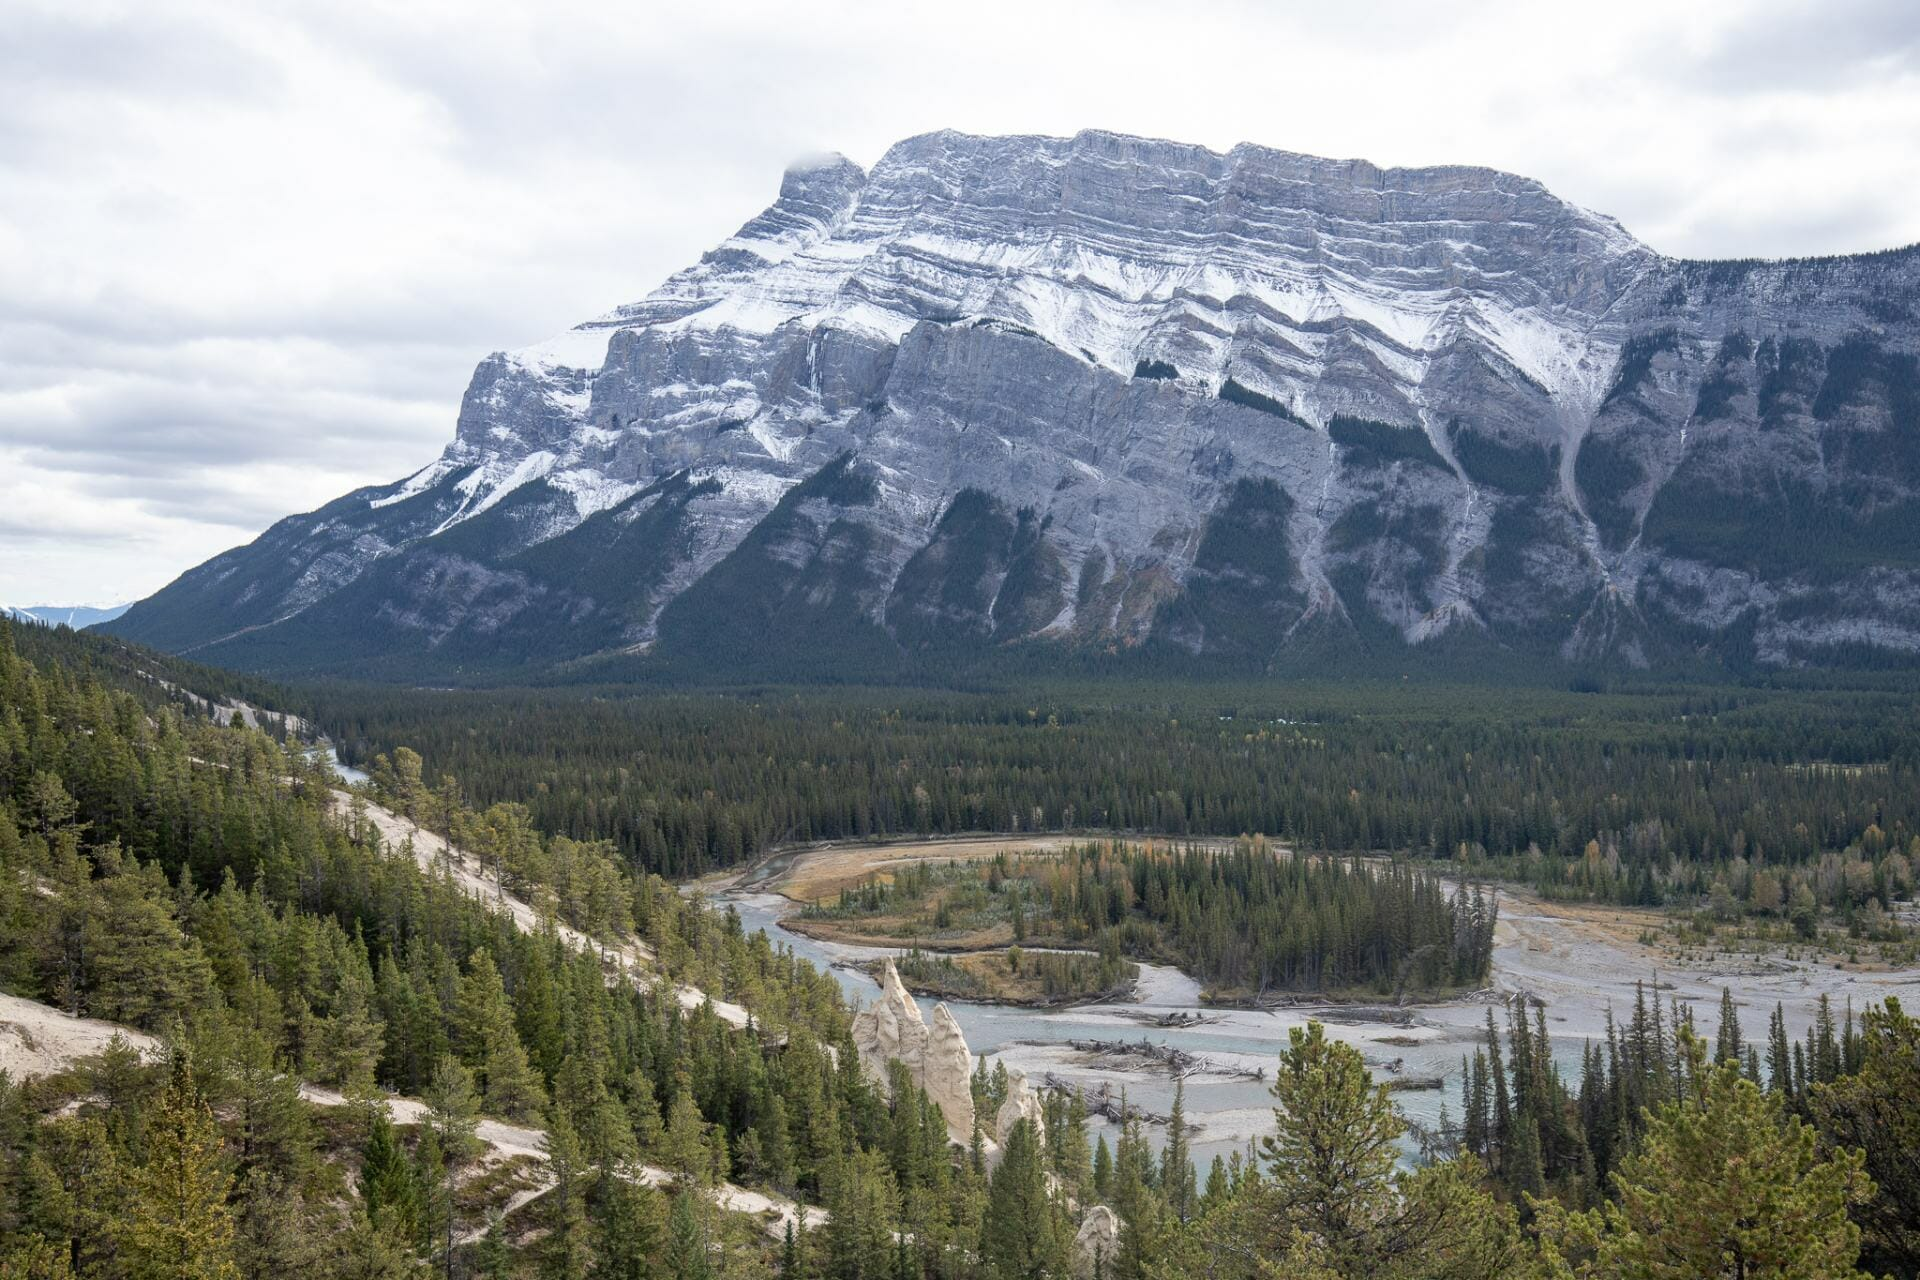 Hoodoos are one of the best photo spots in Banff